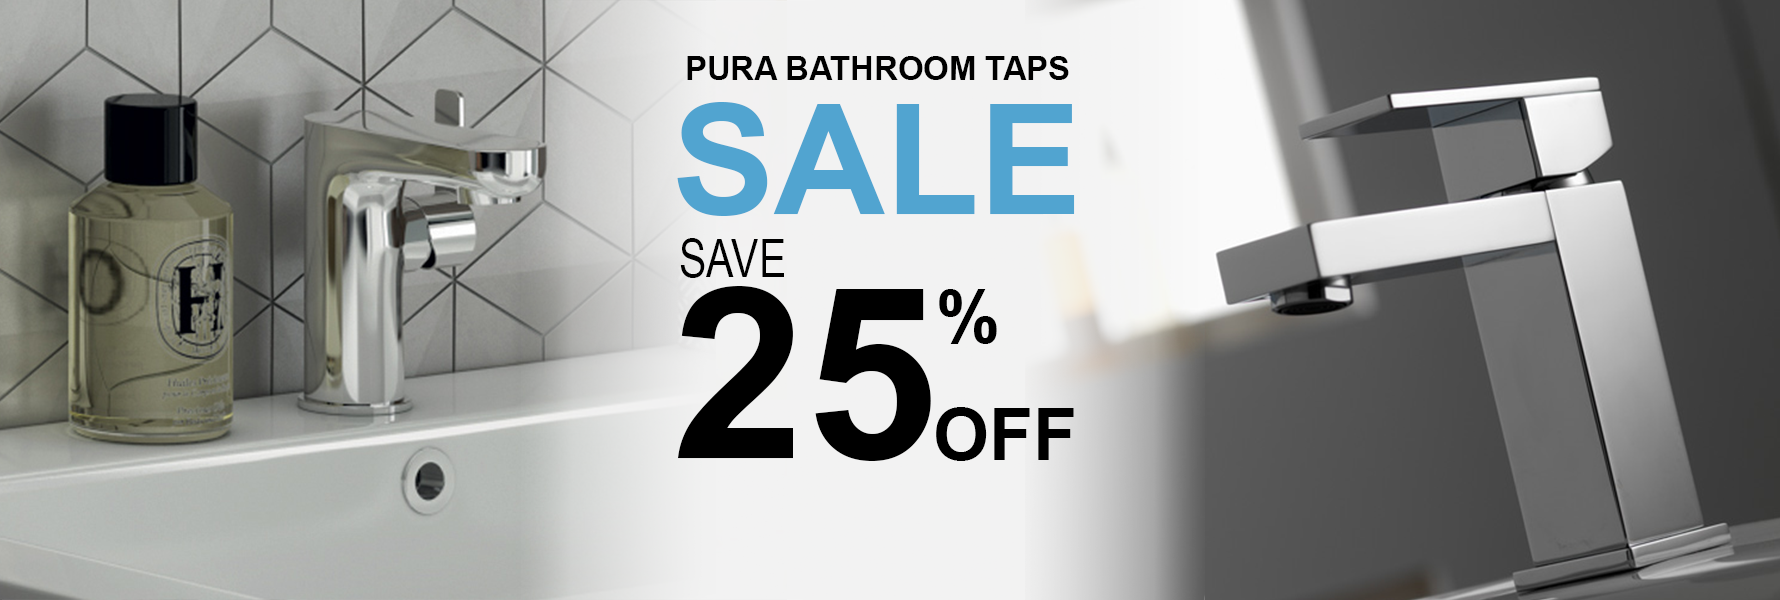 Pura Bathroom Taps